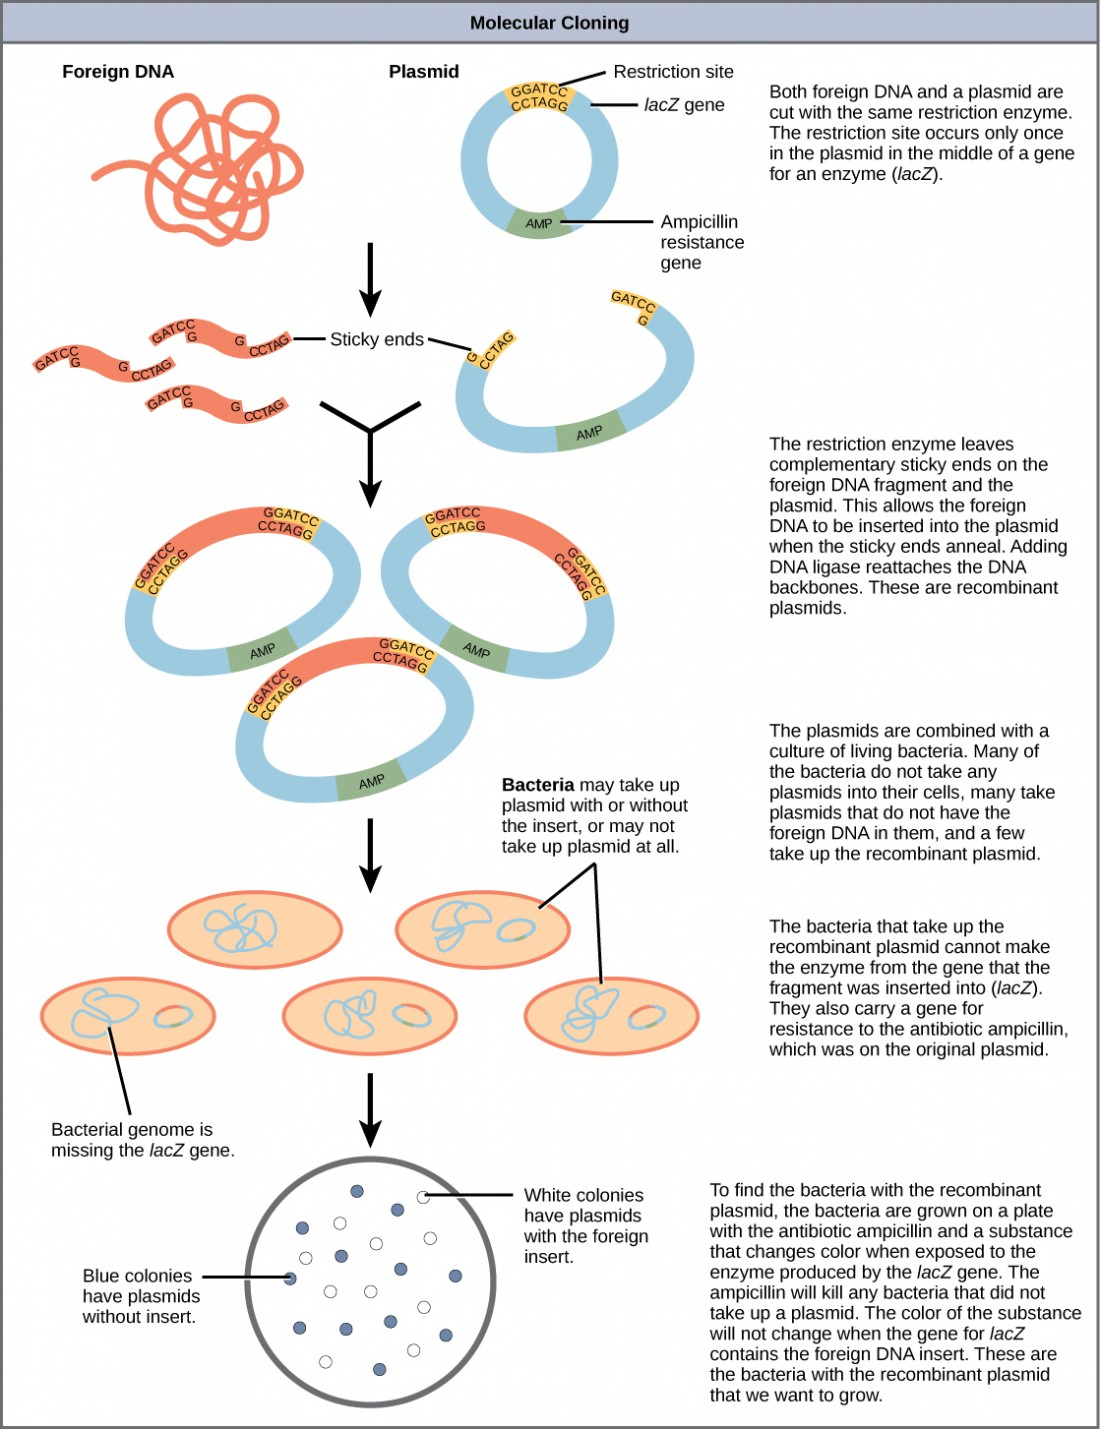 An illustration showing the steps in creating recombinant DNA plasmids, inserting them into bacteria, and then selecting only the bacteria that have successfully taken up the recombinant plasmid. The steps are as follows: both foreign DNA and a plasmid are cut with the same restriction enzyme. The restriction site occurs only once in the plasmid in the middle of a gene for an enzyme (lacZ). The restriction enzyme leaves complementary sticky ends on the foreign DNA fragment and the plasmid. This allows the foreign DNA to be inserted into the plasmid when the sticky ends anneal. Adding DNA ligase reattaches the DNA backbones. These are recombinant plasmids. The plasmids are combined with a culture of living bacteria. Many of the bacteria do not take any plasmids into their cells, many take plasmids that do not have the foreign DNA in them, and a few take up the recombinant plasmid. The bacteria that take up the recombinant plasmid cannot make the enzyme from the gene that the fragment was inserted into (lacZ). They also carry a gene for resistance to the antibiotic ampicillin, which was on the original plasmid. To find the bacteria with the recombinant plasmid, the bacteria are grown on a plate with the antibiotic ampicillin and a substance that changes color when exposed to the enzyme produced by the lacZ gene. The ampicillin will kill any bacteria that did not take up a plasmid. The color of the substance will not change when the gene for lacZ contains the foreign DNA insert. These are the bacteria with the recombinant plasmid that we want to grow.